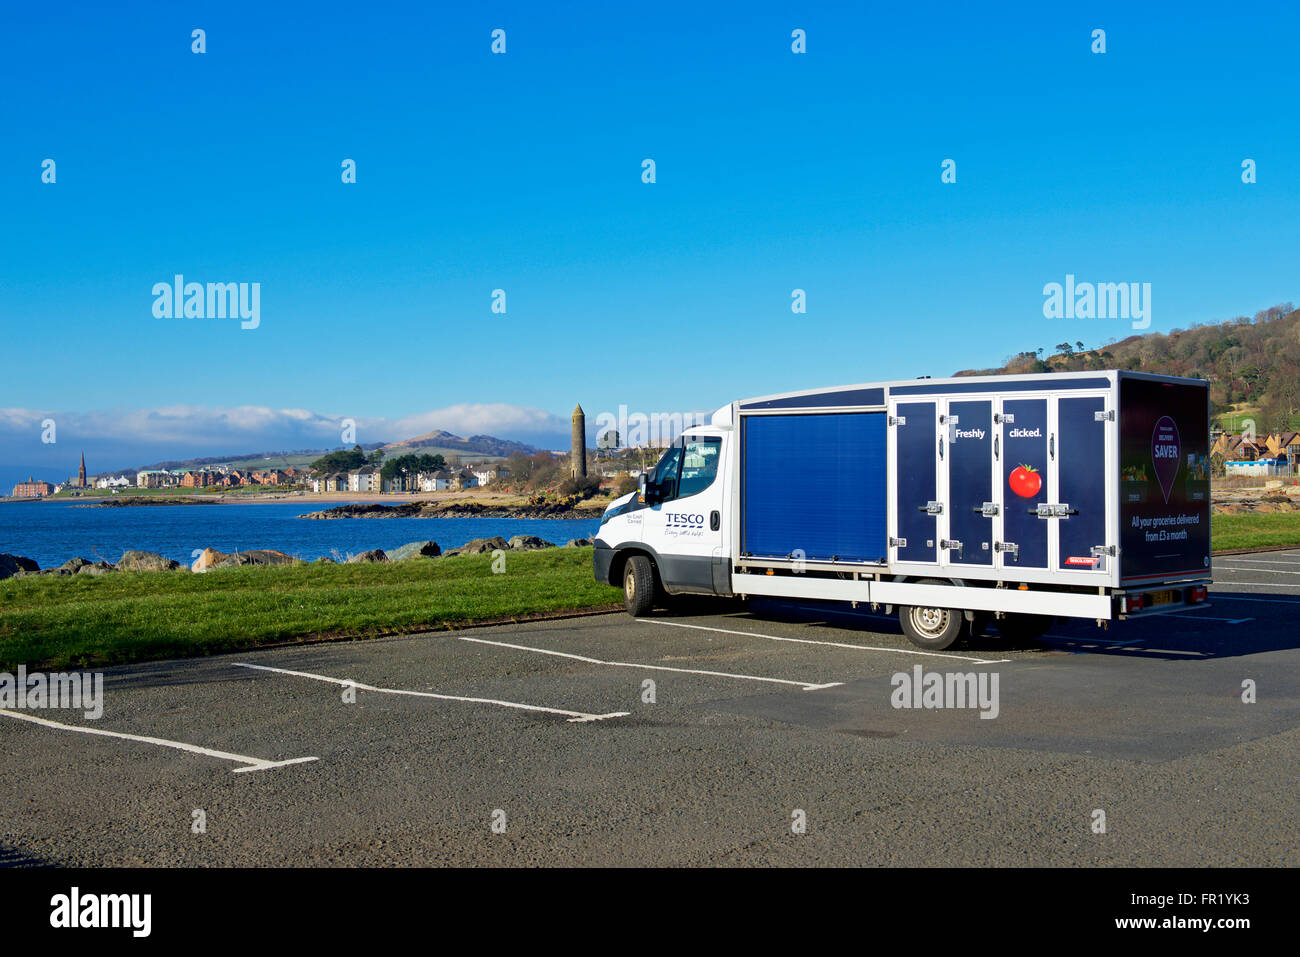 Tesco delivery van, parked overlooking the coastal town of Largs, North Ayrshire, Scotland UK - Stock Image